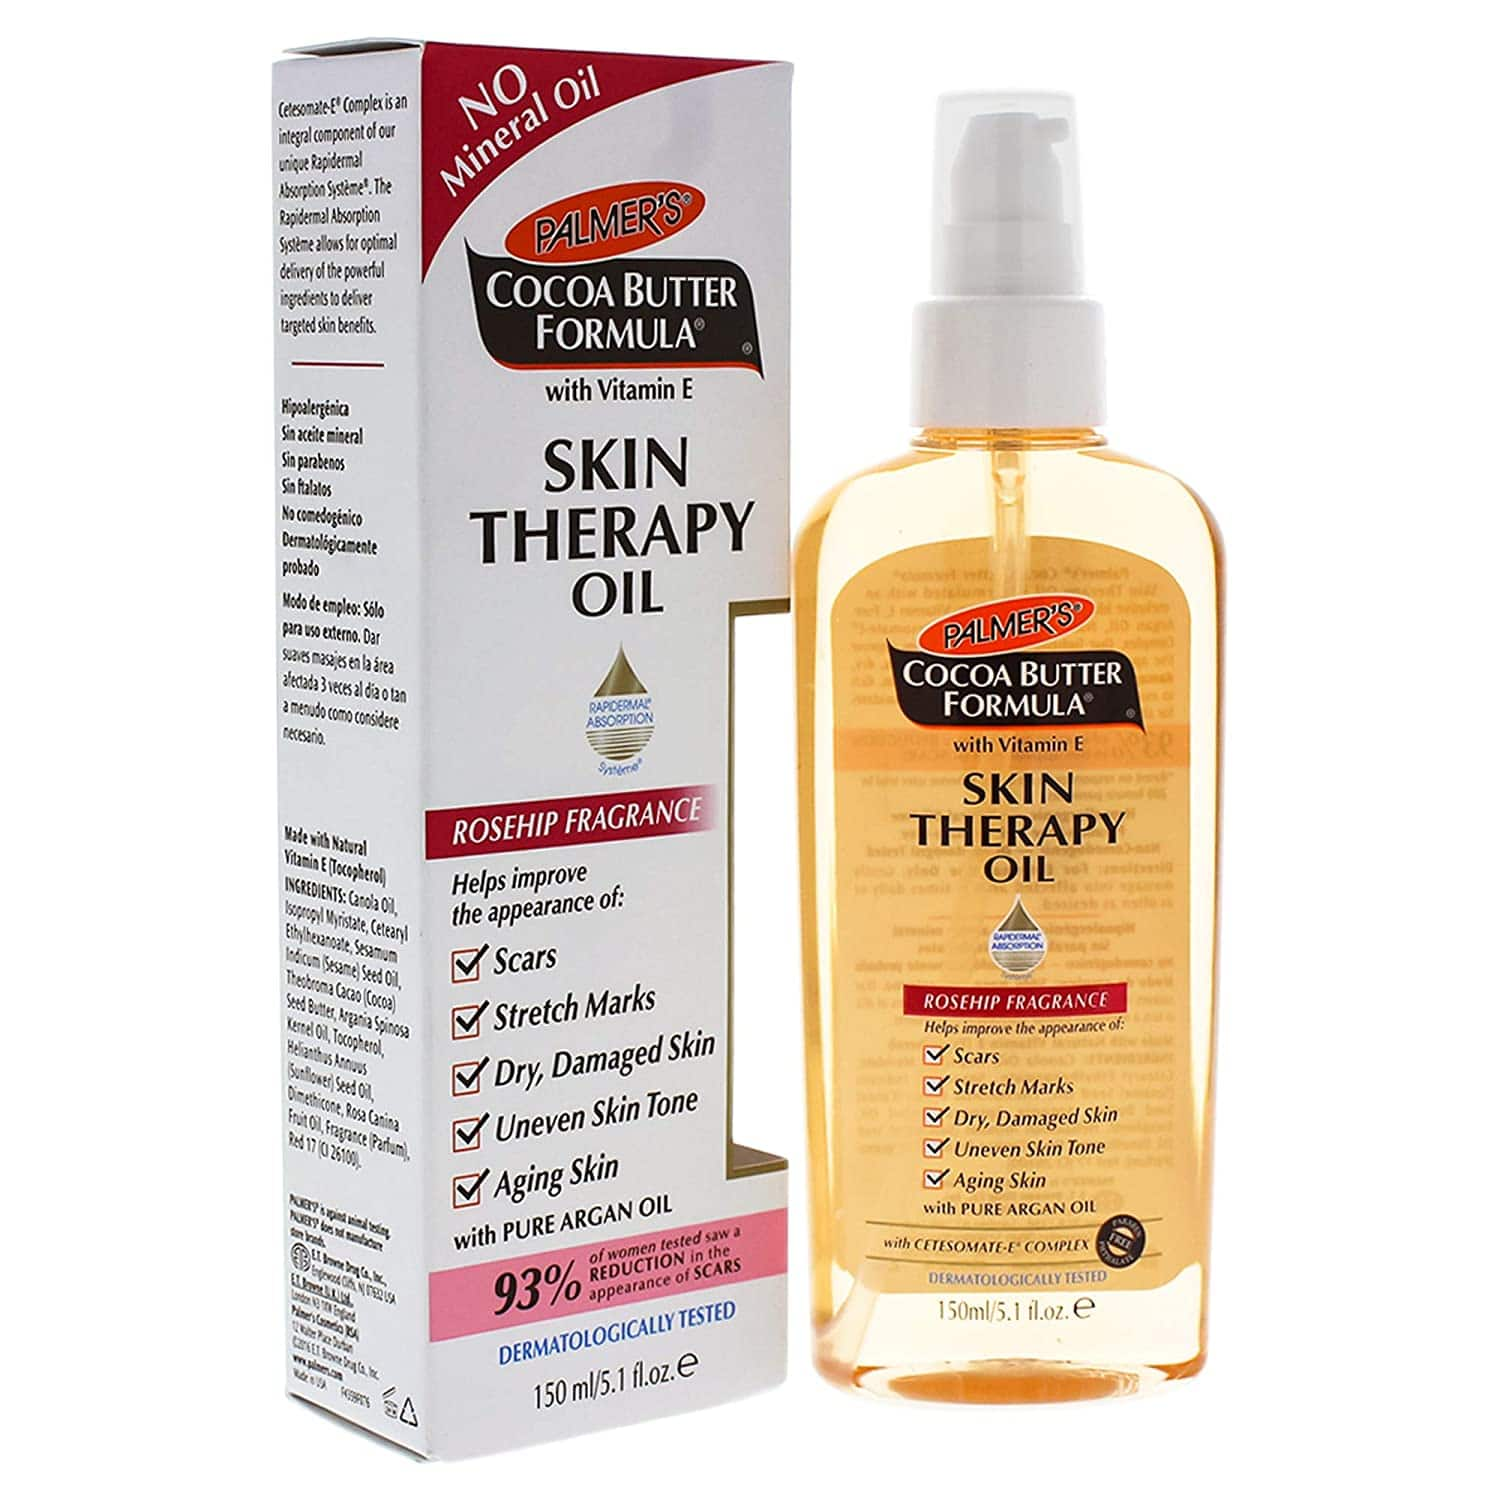 Palmer's Cocoa Butter Formula Skin Therapy Moisturizing Body Oil $4 at Amazon